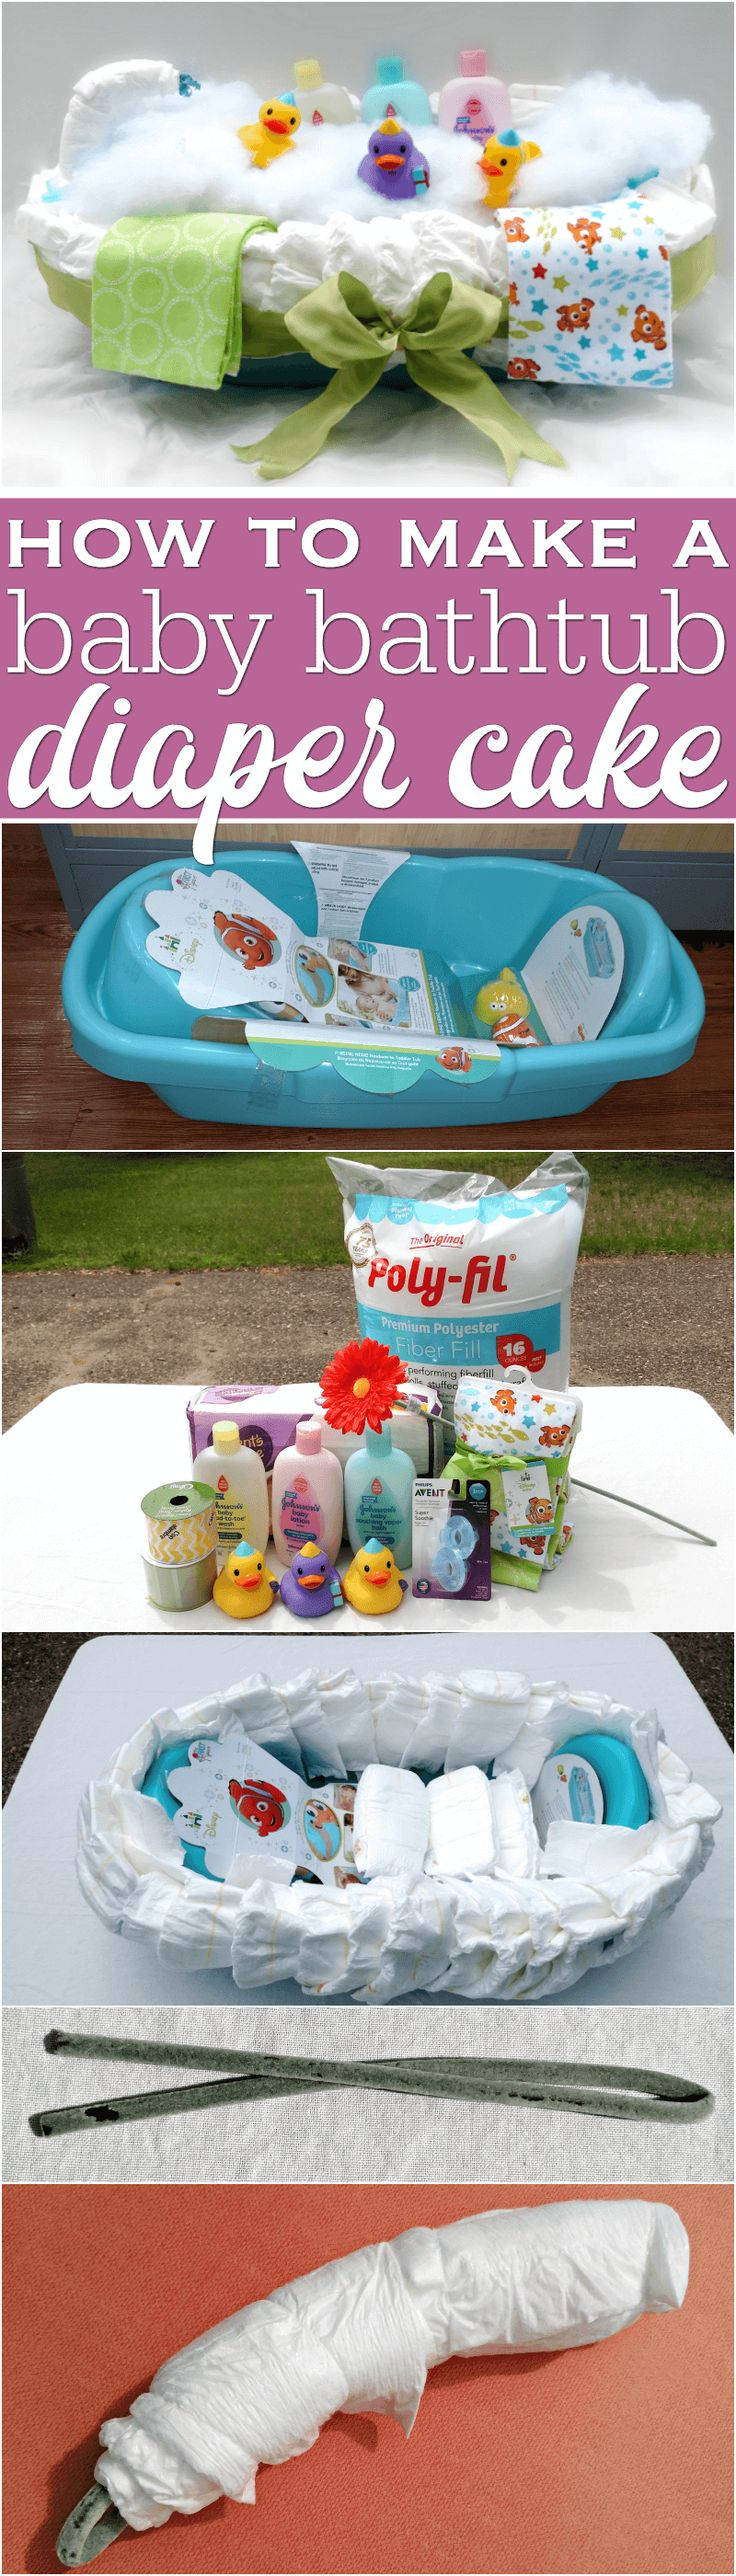 Step by step instructions for how to make a baby bathtub diaper cake. It's a fun way to turn a baby bath into a gift basket with a no-roll diaper cake!